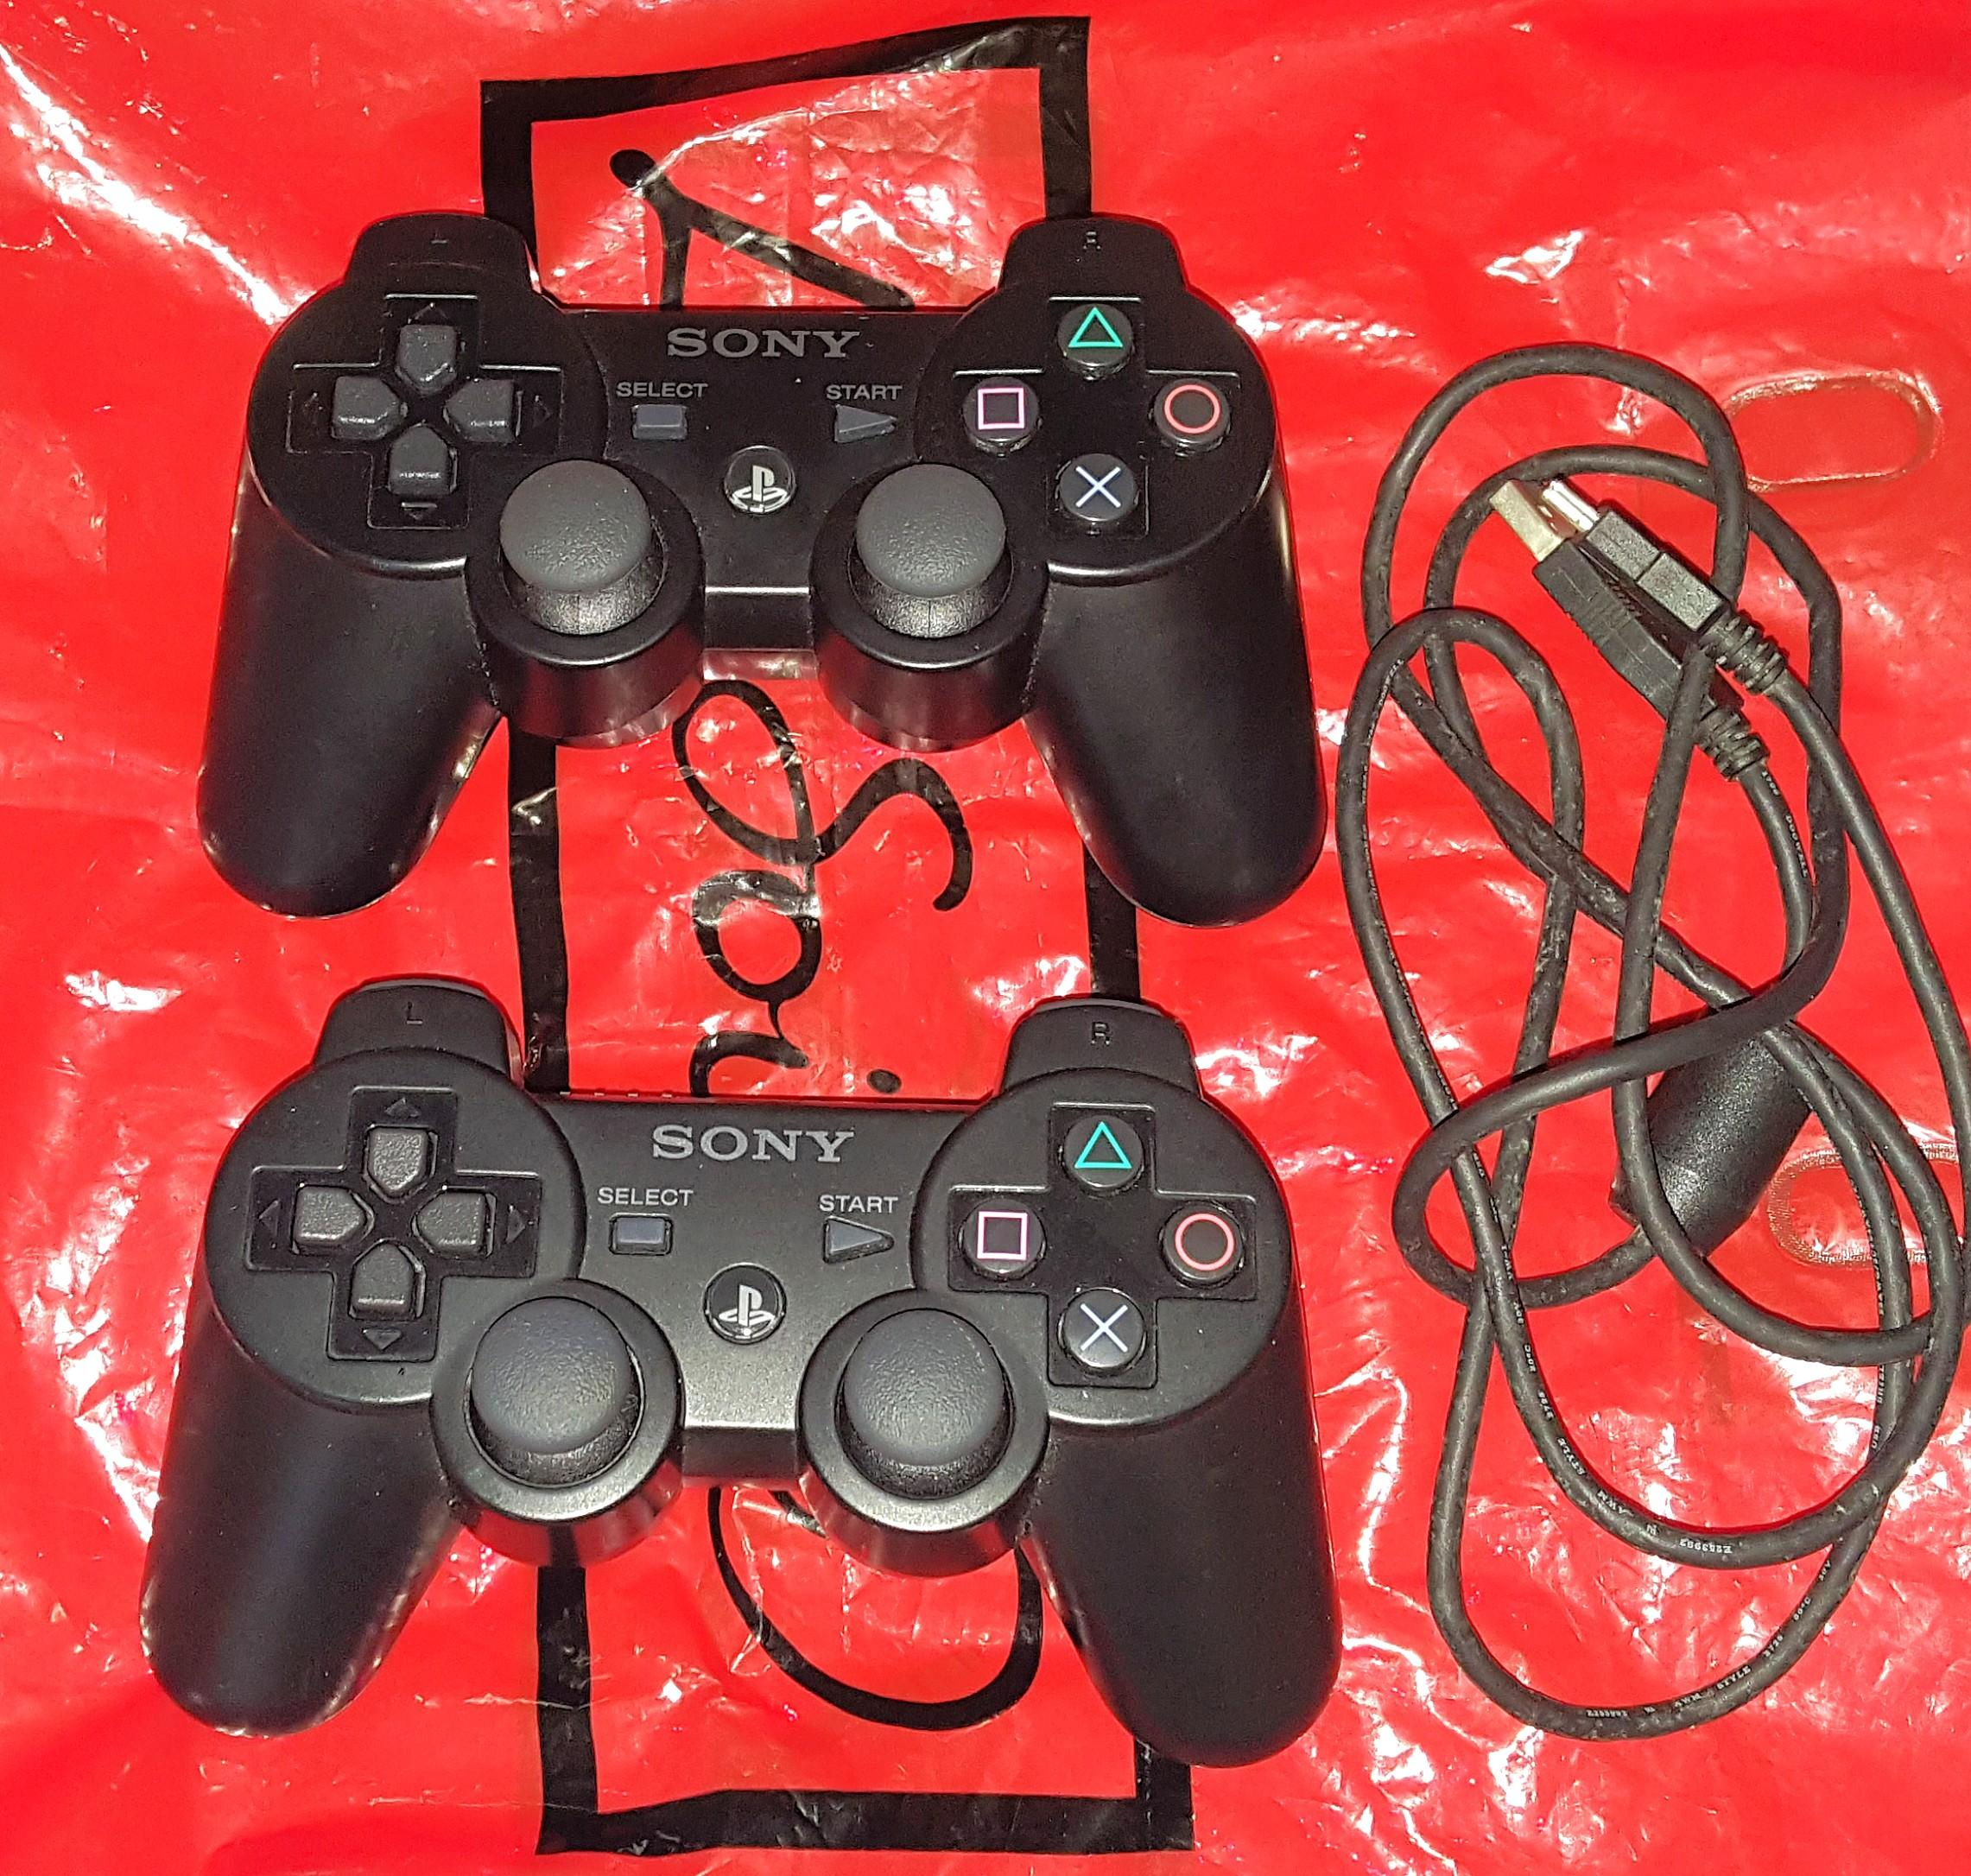 SONY PS3 Controllers + One USB Charger Cable, Buy 2 Controllers For $100.  100% Working.